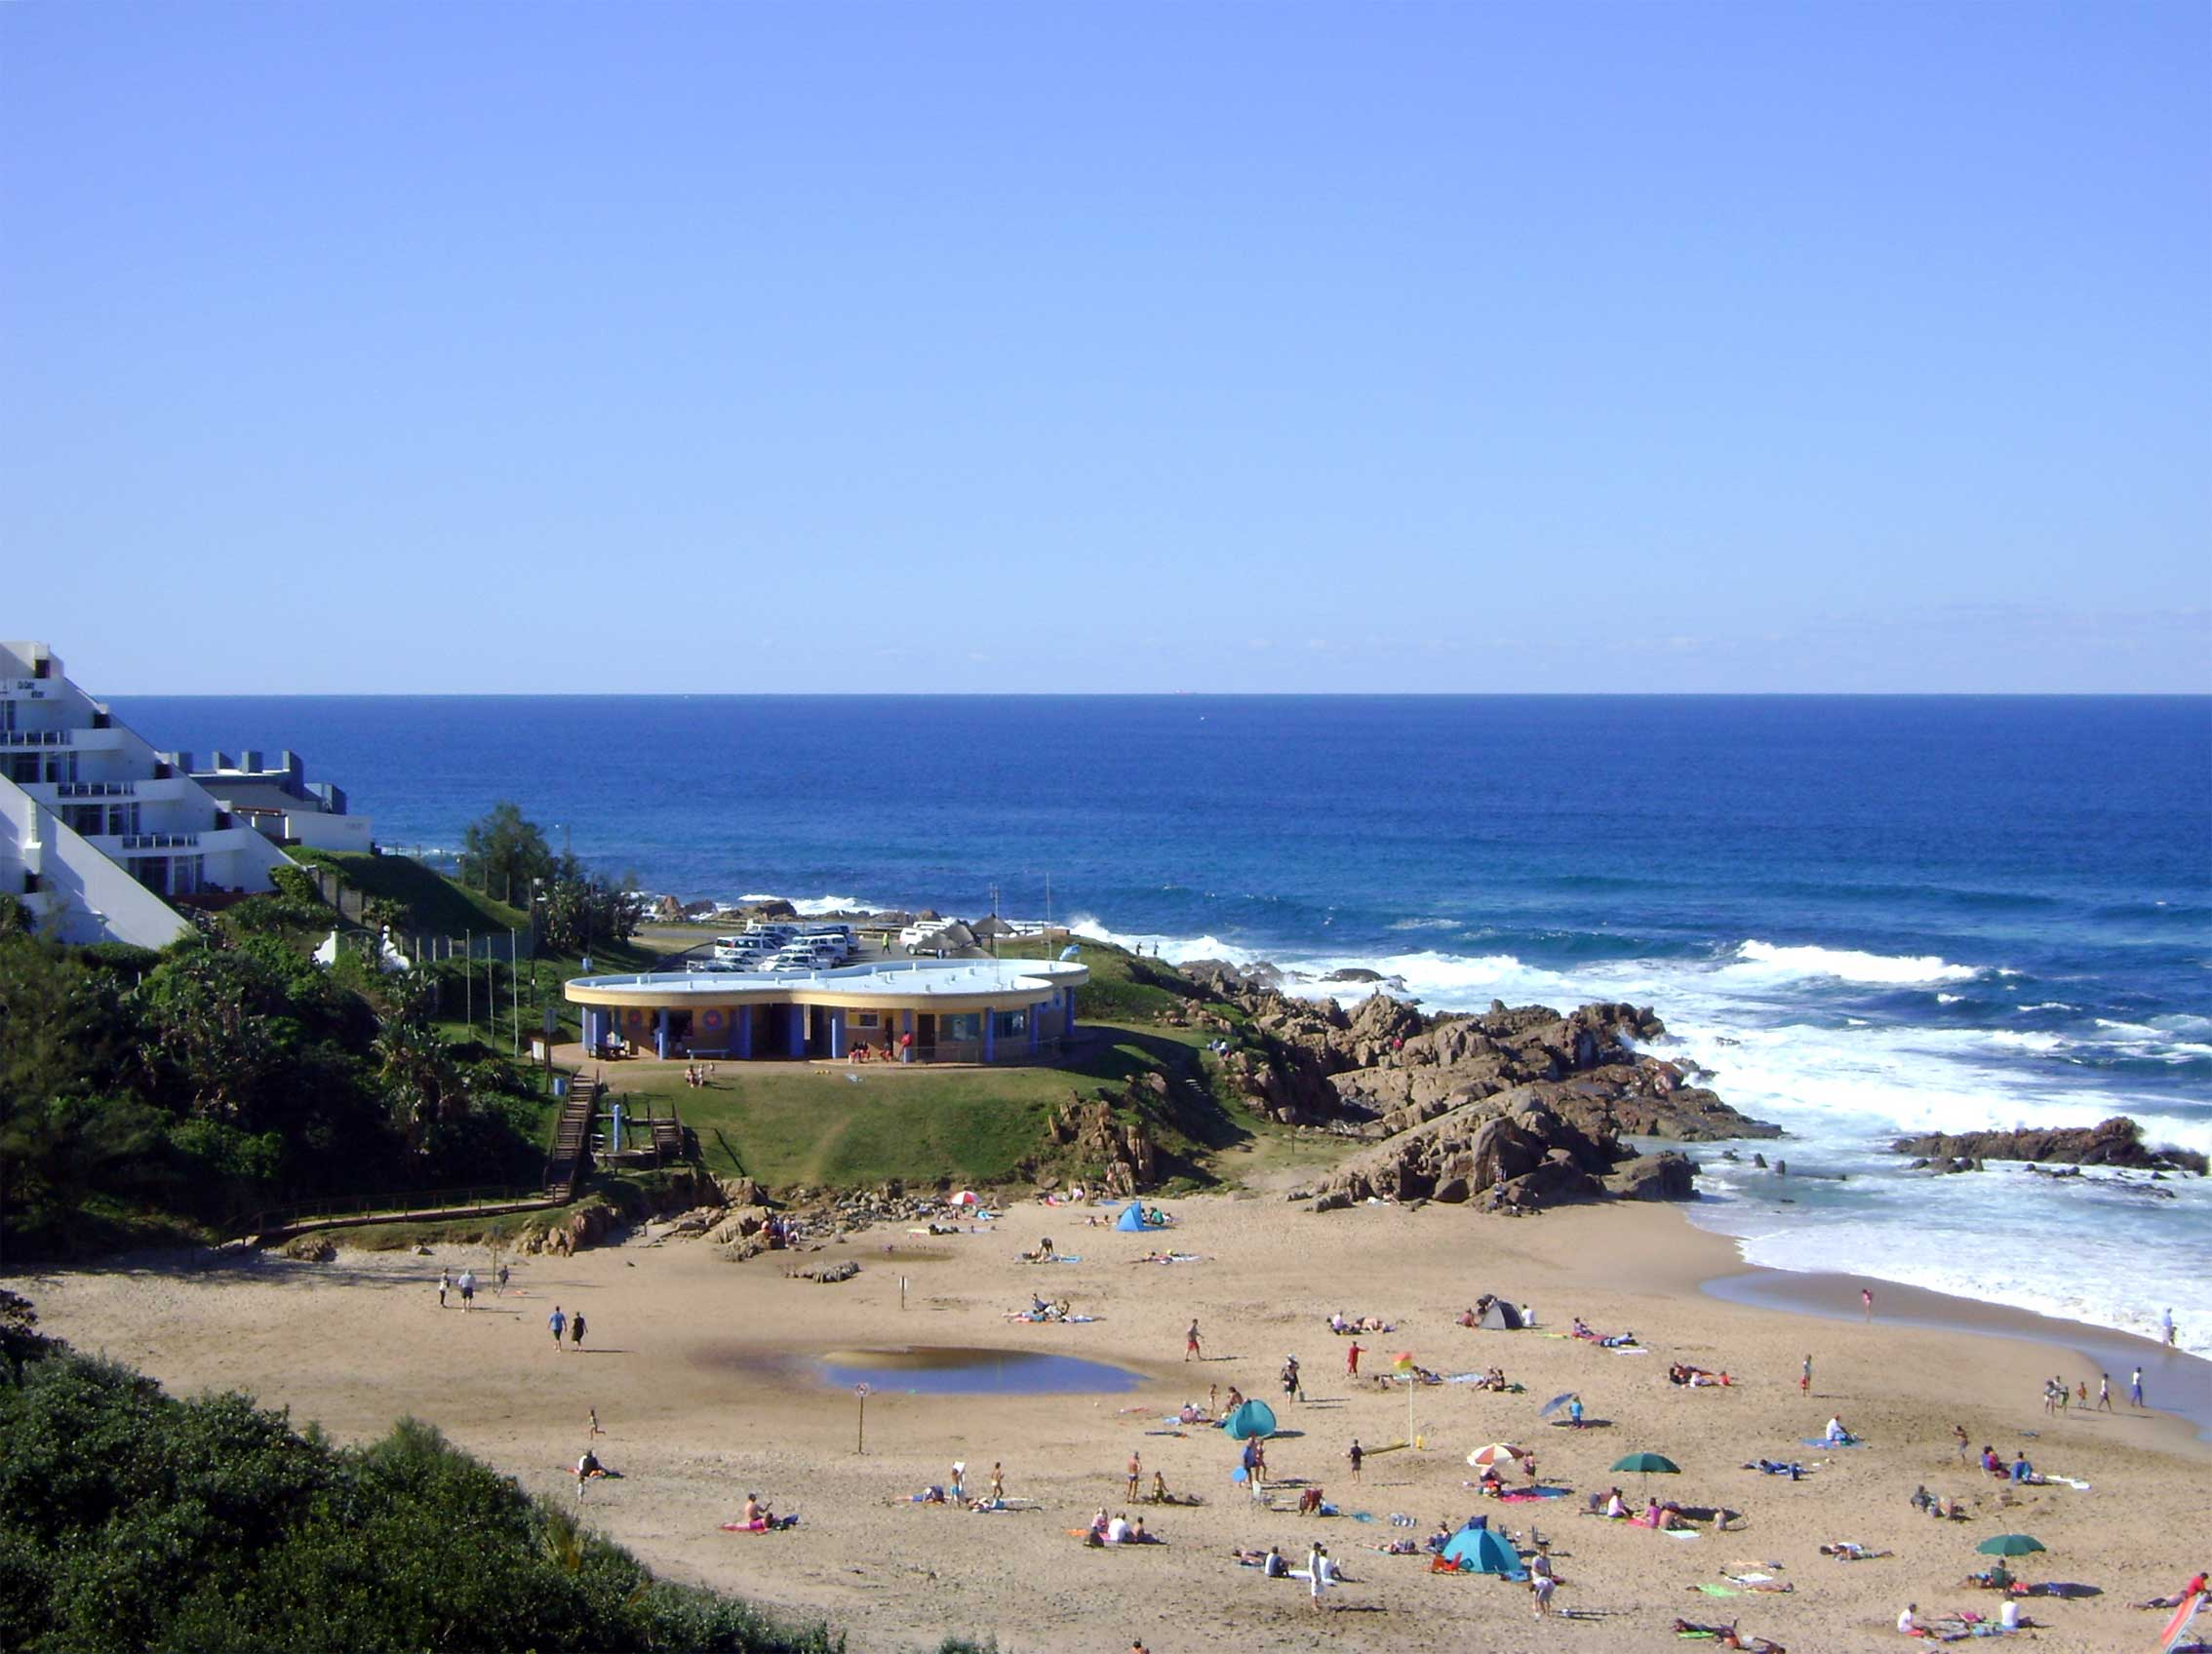 manaba beach self catering south coast holiday accommodation lucien beach